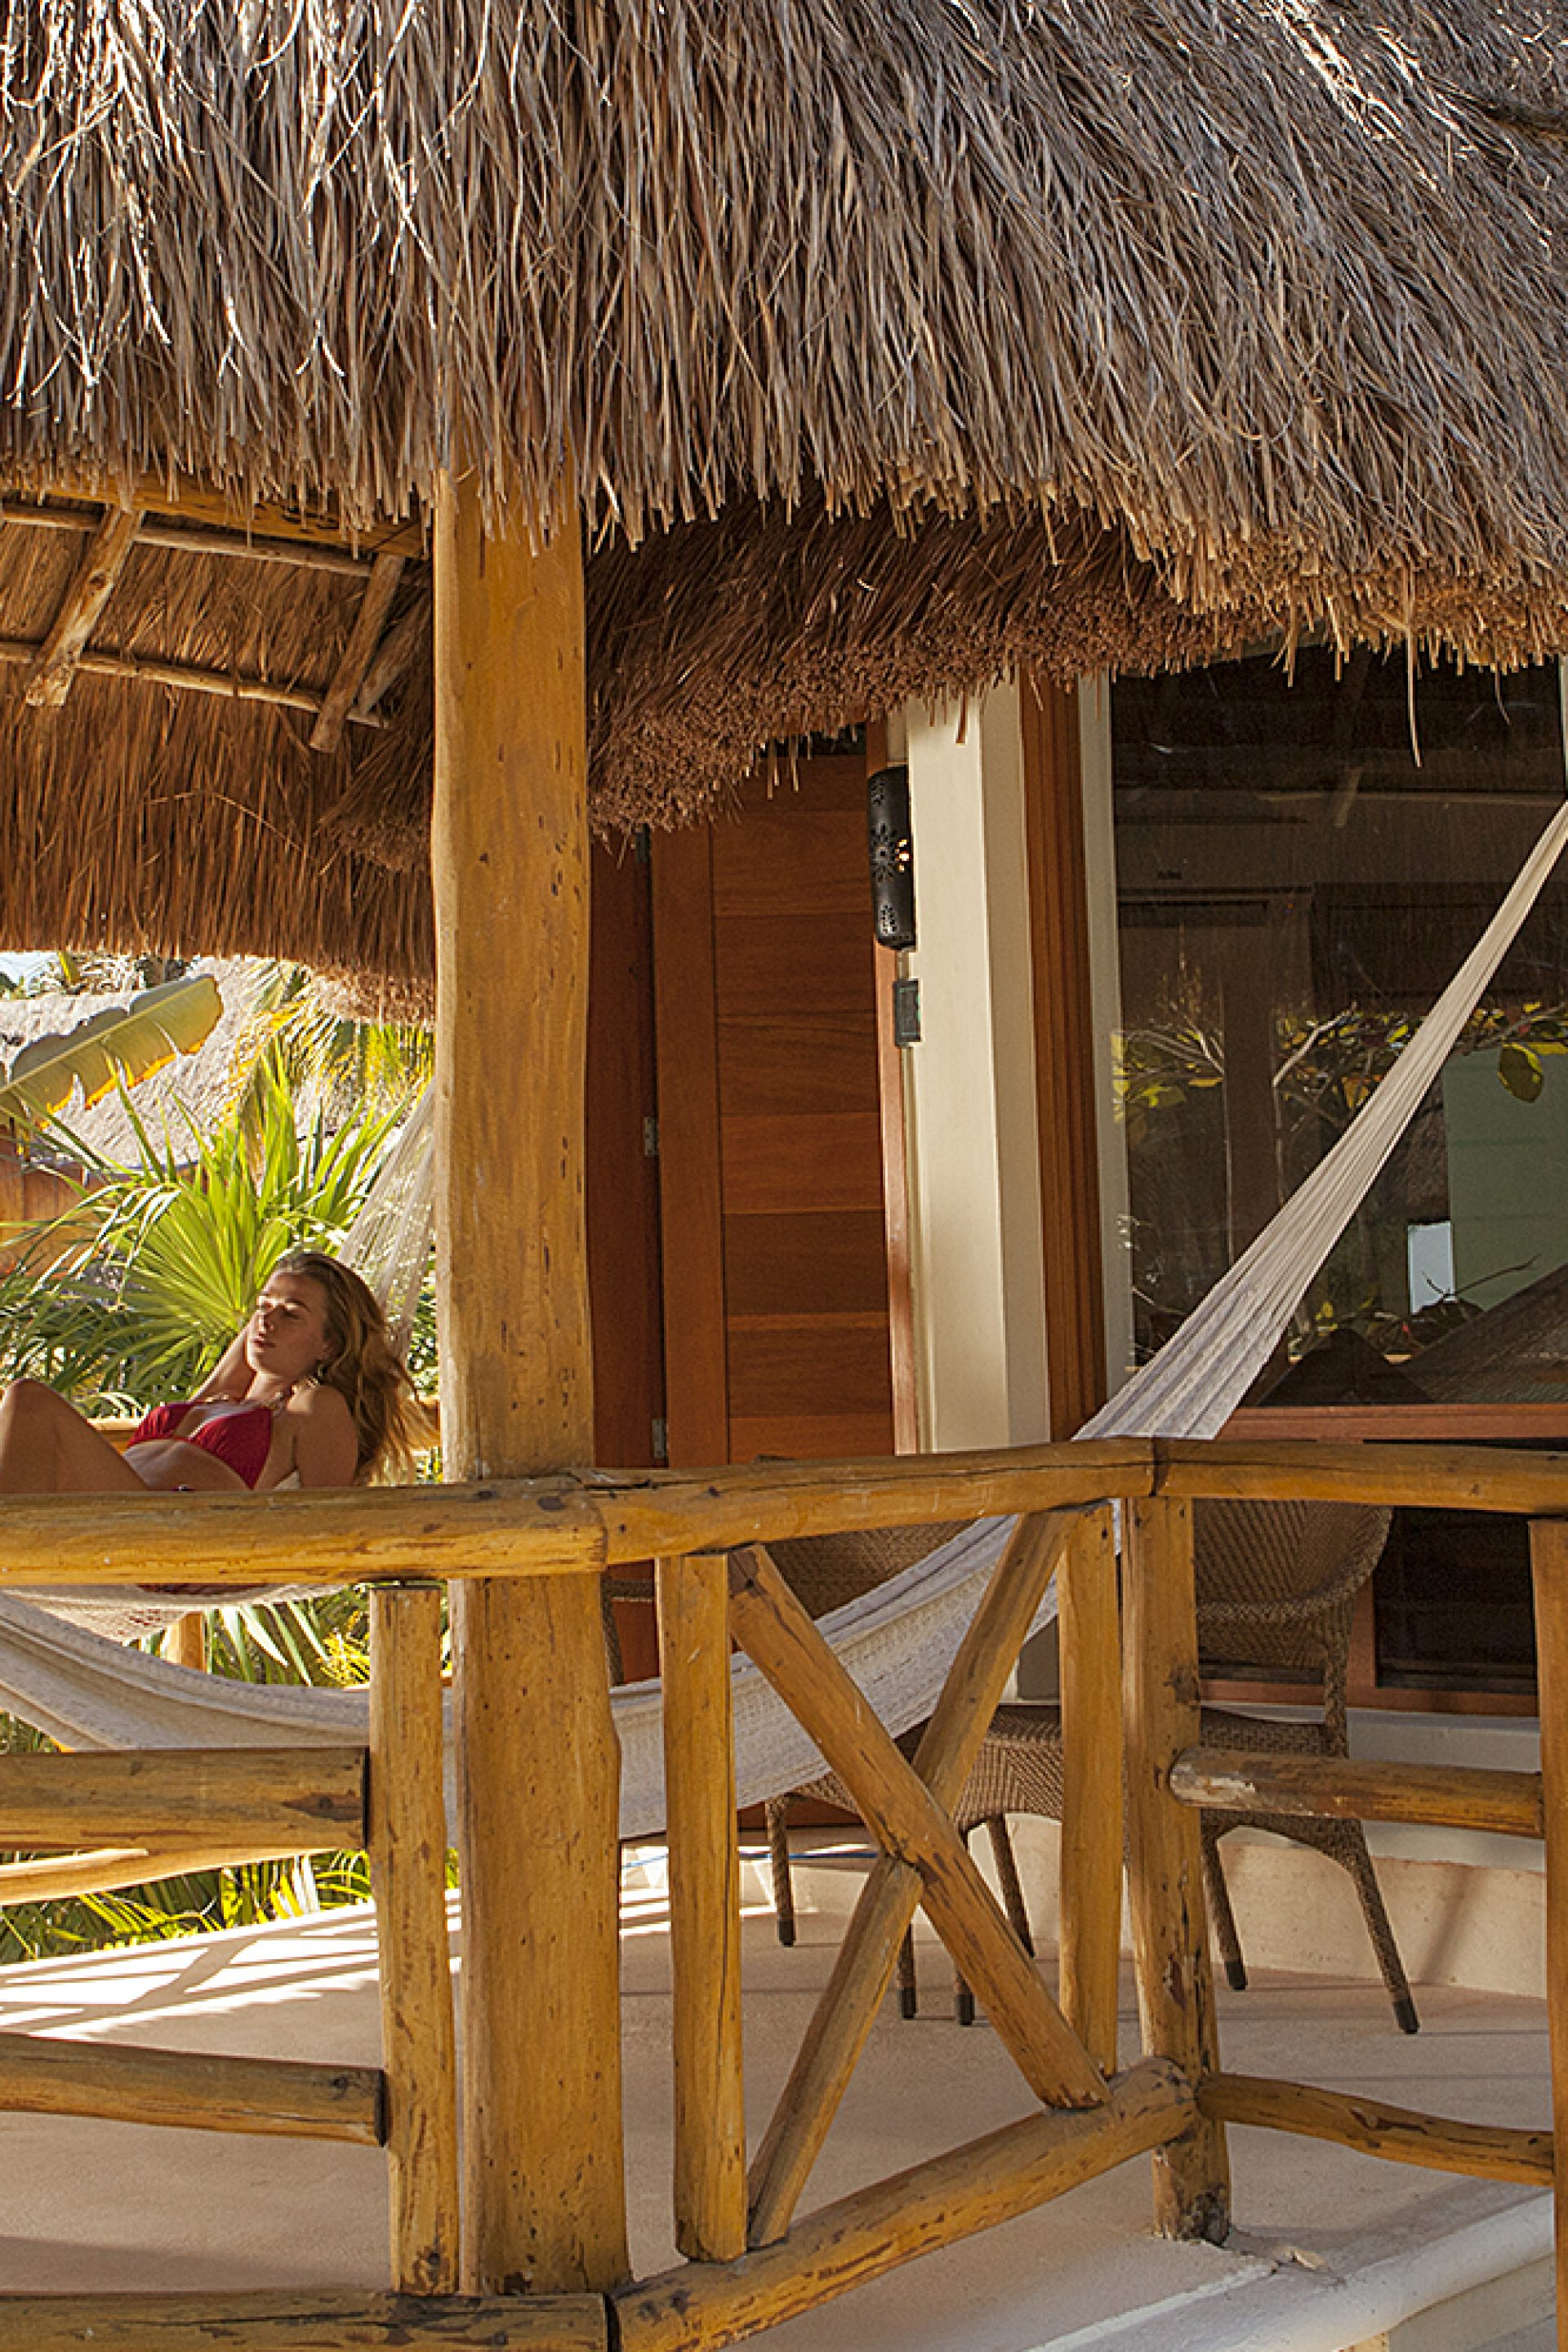 Relax in a Hammock on private deck at Mahekal Beach Resort